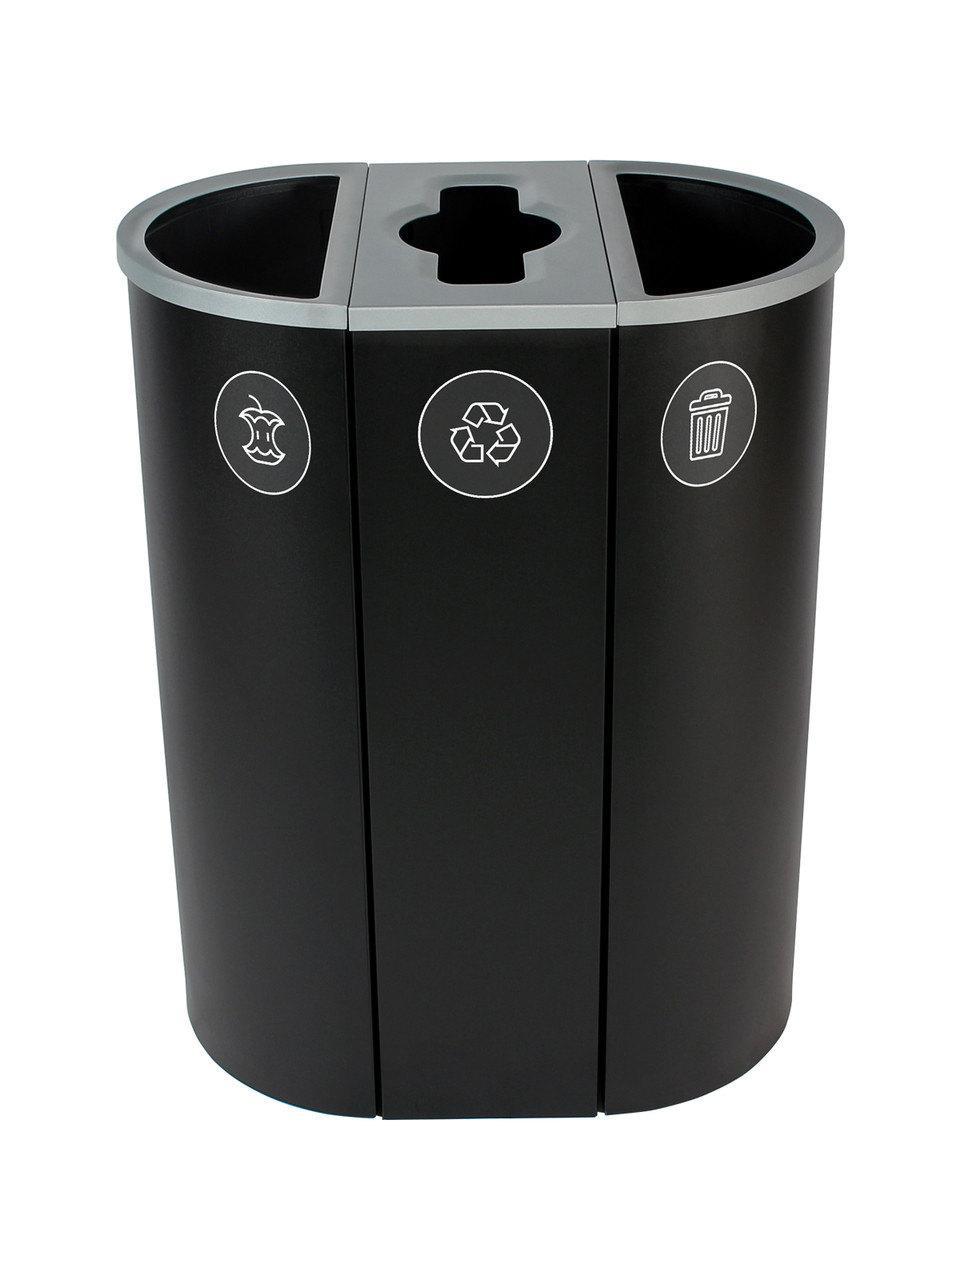 26 Gallon Spectrum Triple Recycling Station Black 8107114-424